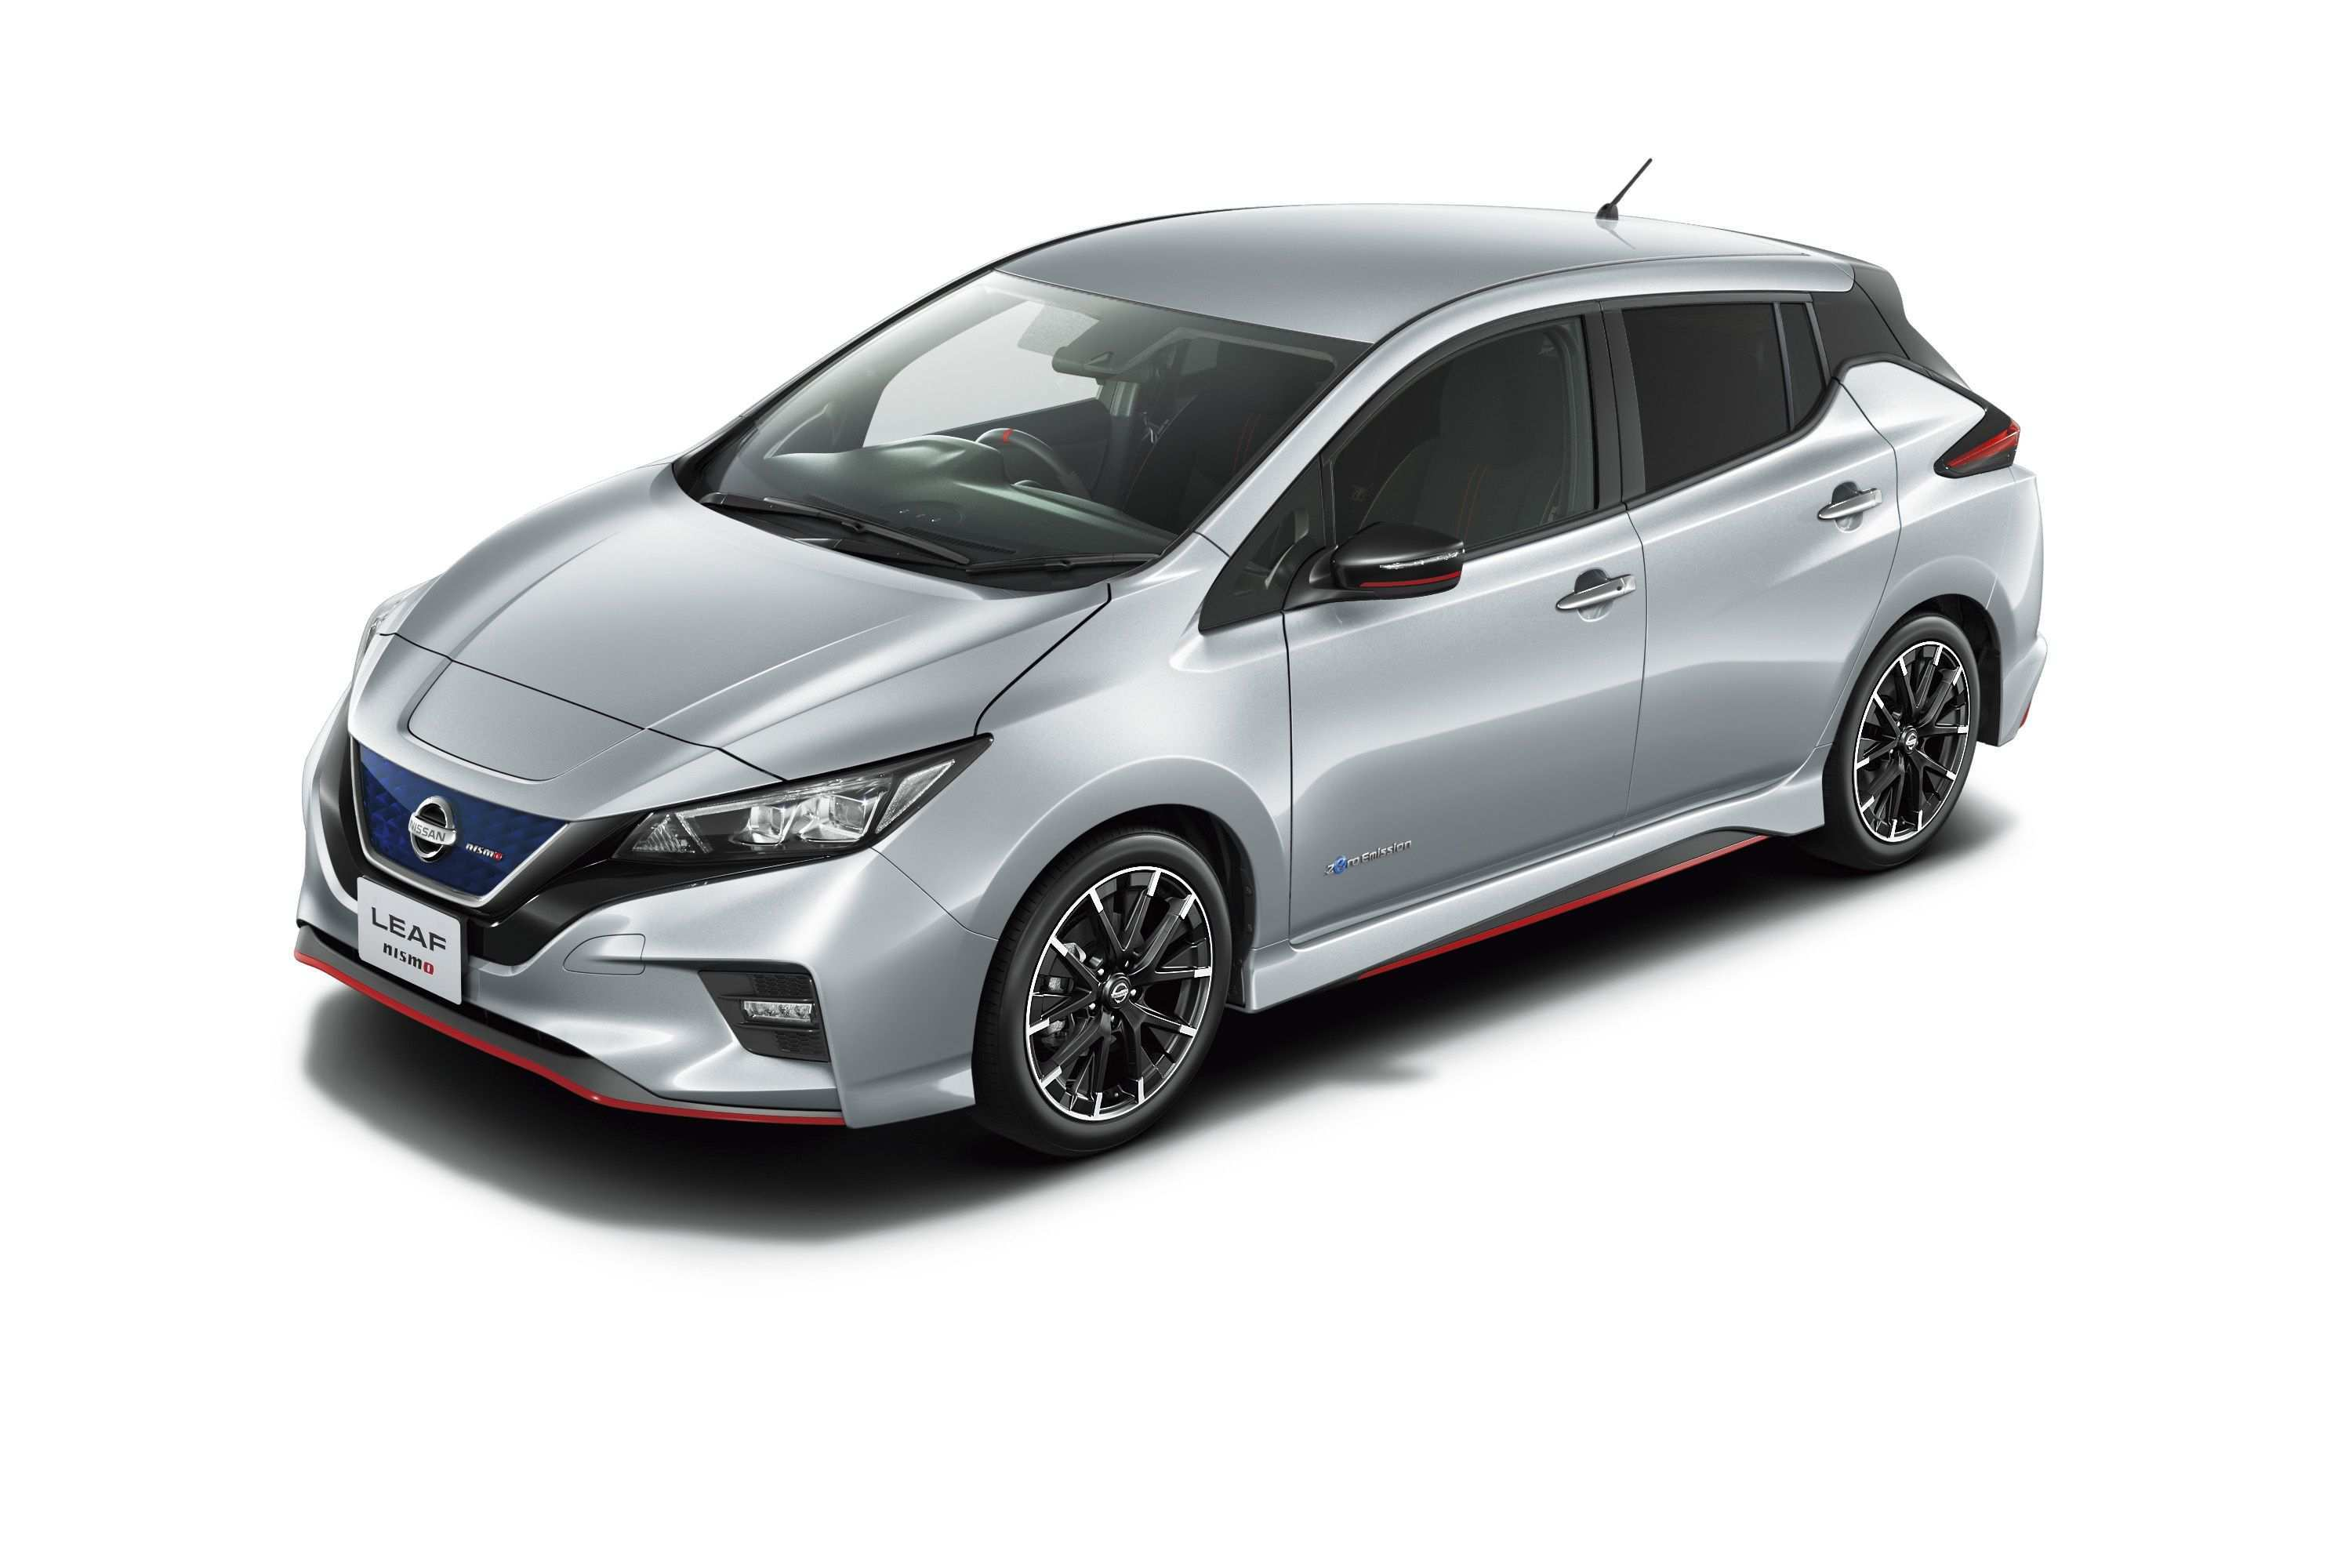 76 The Nissan Leaf Nismo 2019 Performance And New Engine Picture for Nissan Leaf Nismo 2019 Performance And New Engine